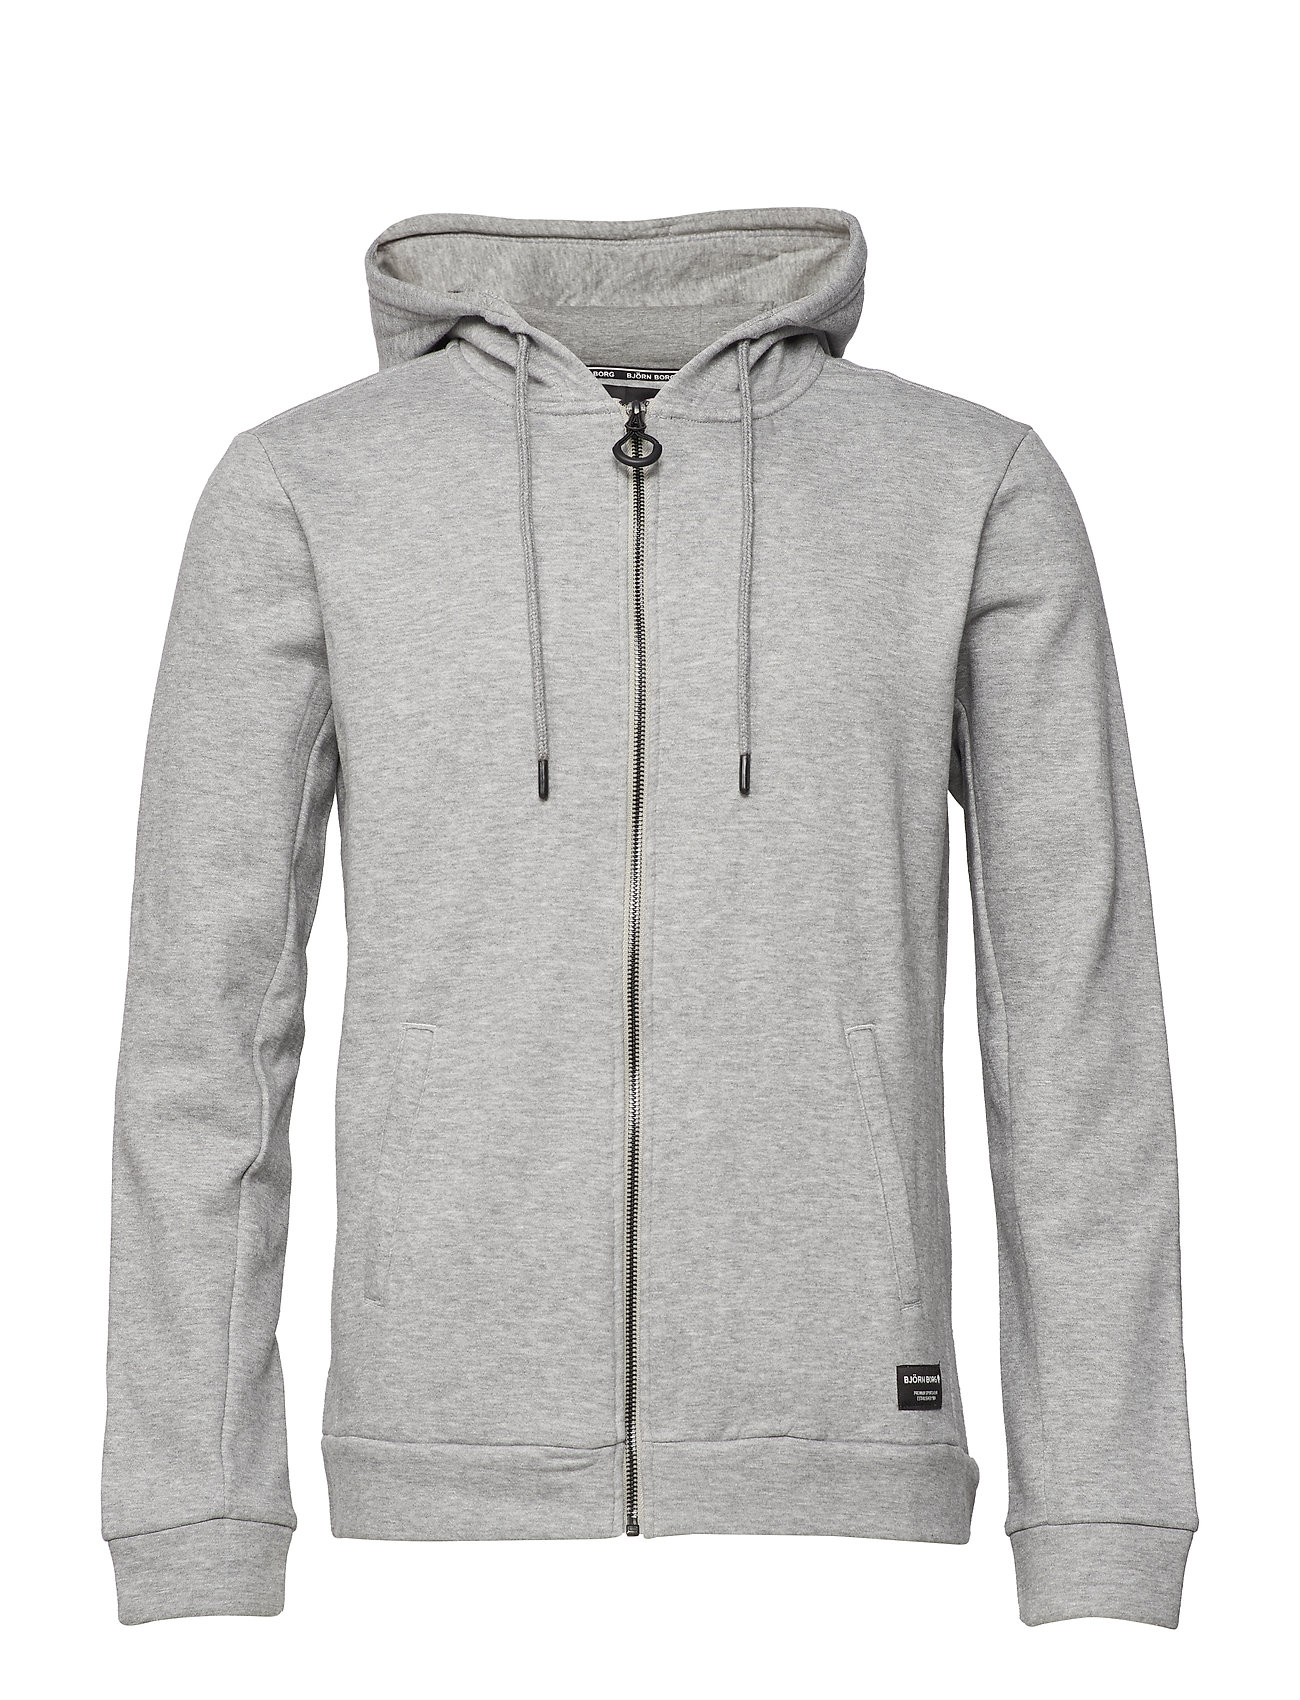 Björn Borg HOODIE BBCENTRE BBCENTRE - H108BY LIGHT GREY MELANGE